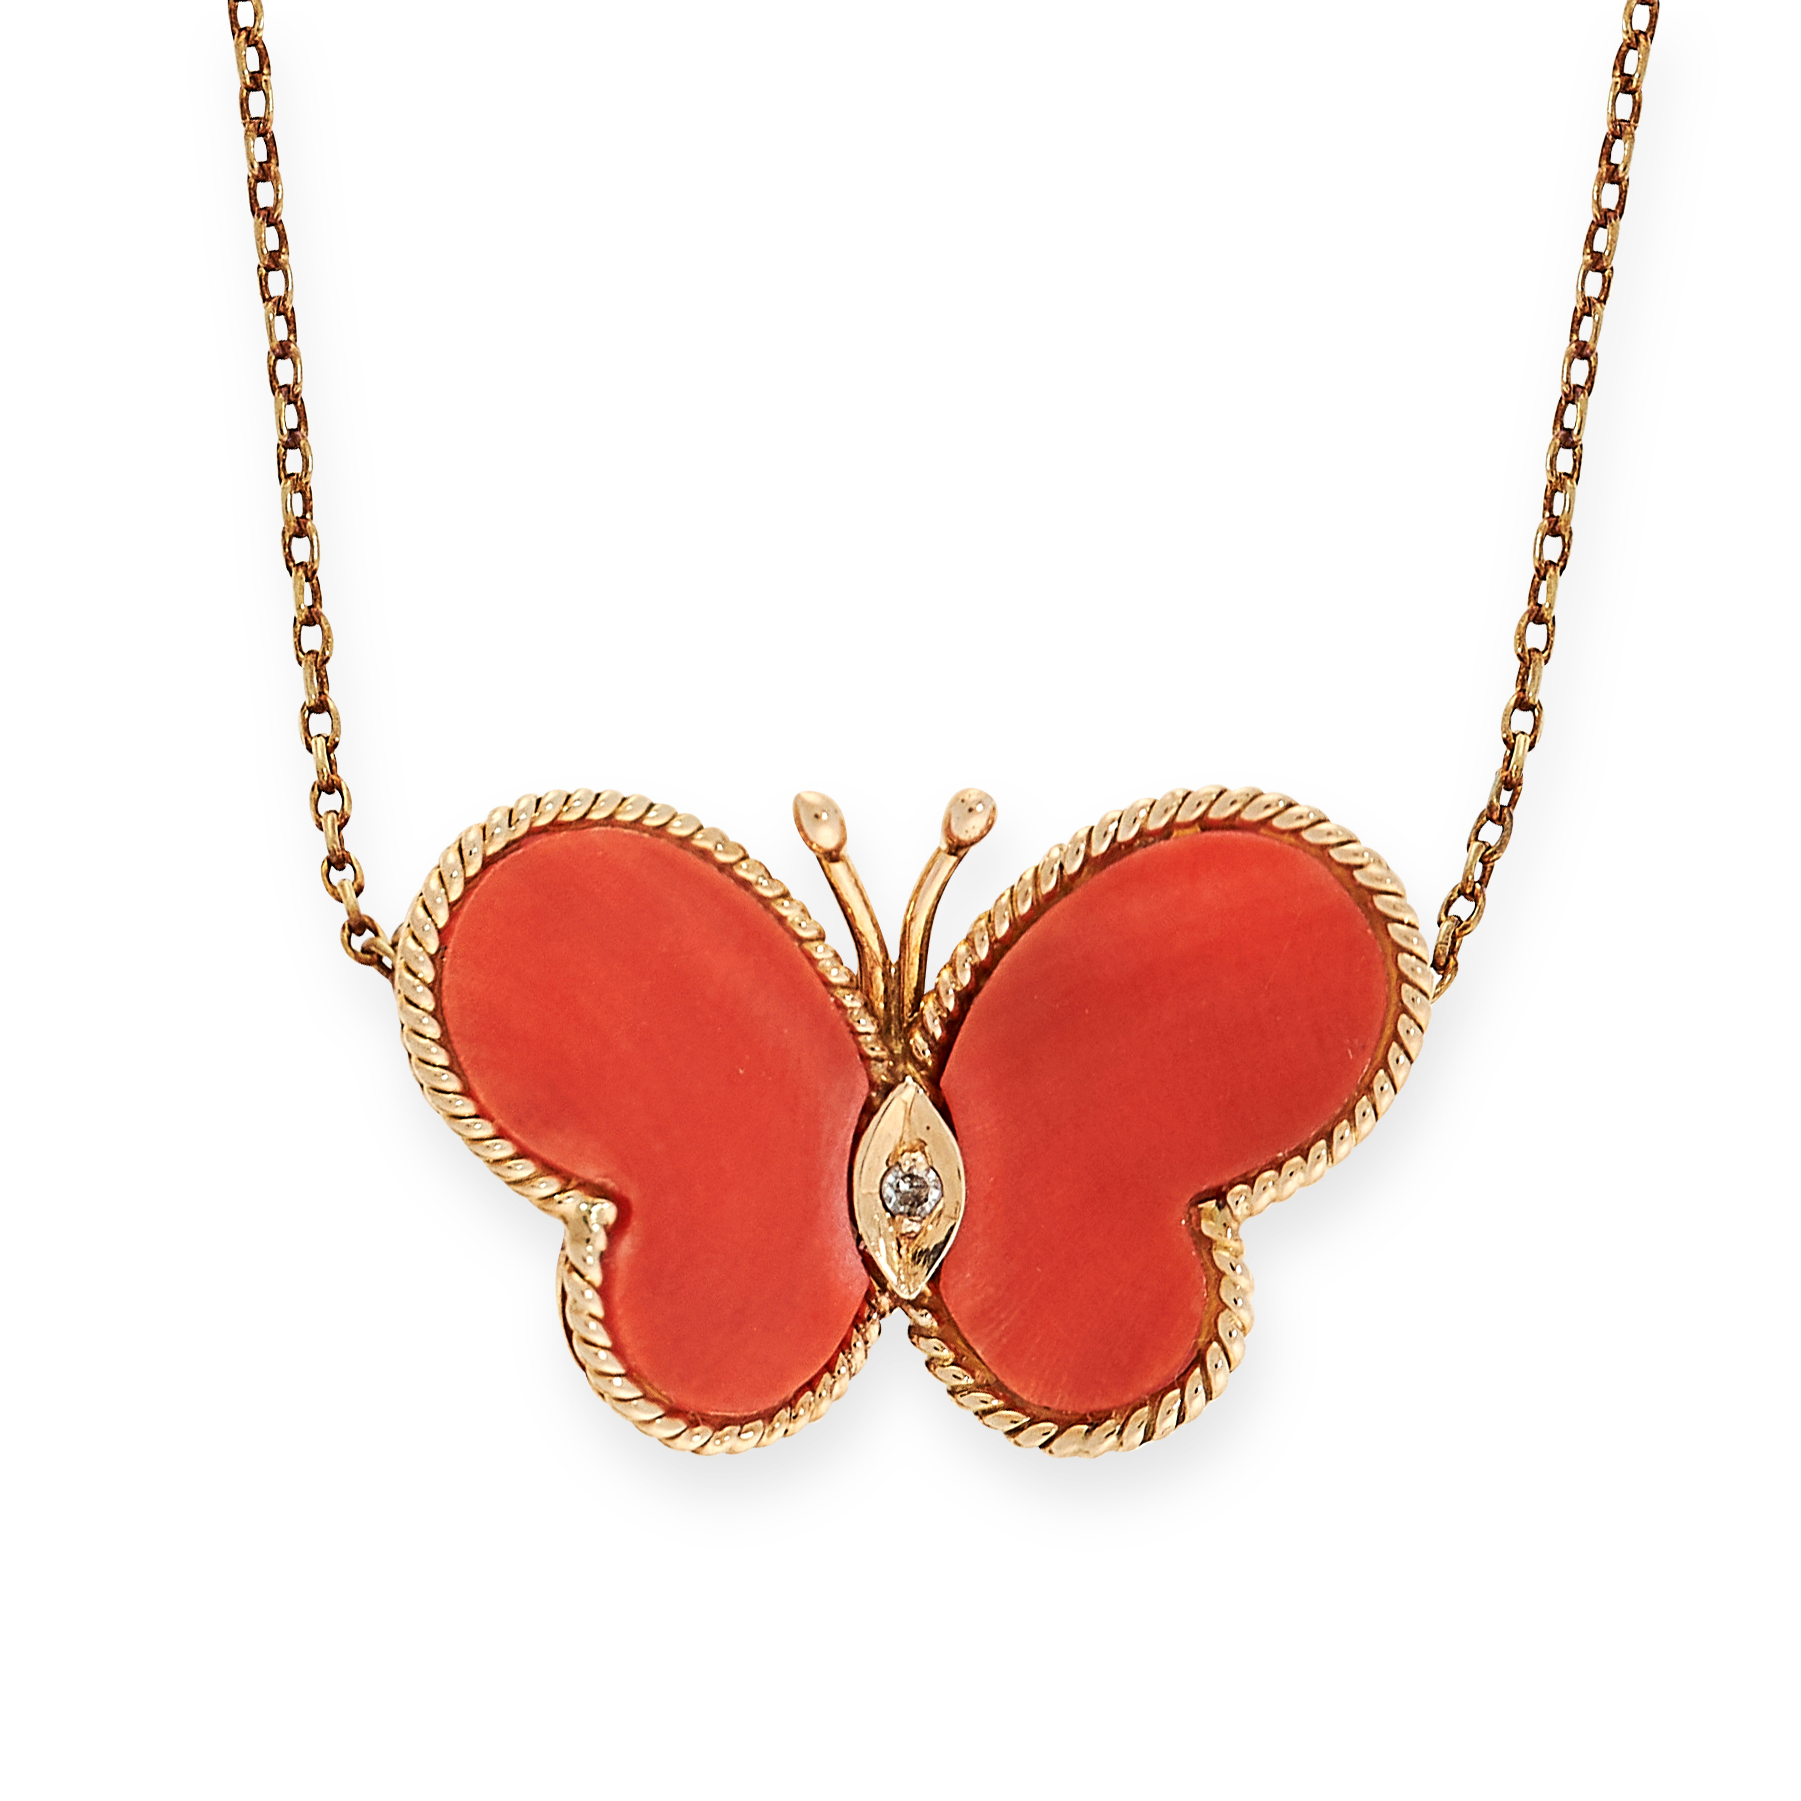 VINTAGE CORAL AND DIAMOND BUTTERFLY PENDANT NECKLACE in the form of a butterfly set with a round cut